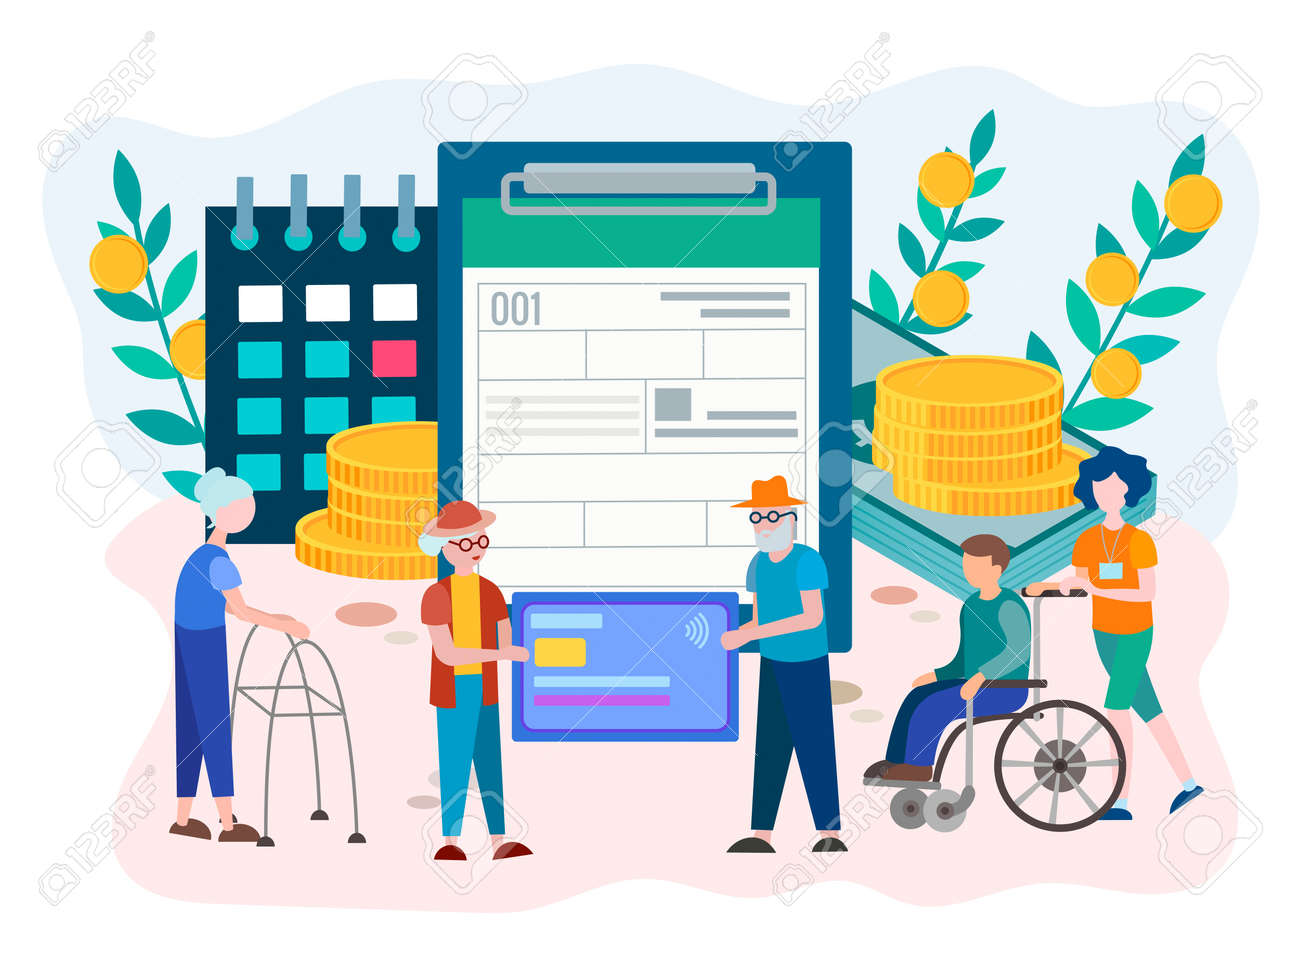 Social Security Benefits Form filling for pensioners and disabled person. Social Security Disability Claim Concept. Vector illustration. - 127093004